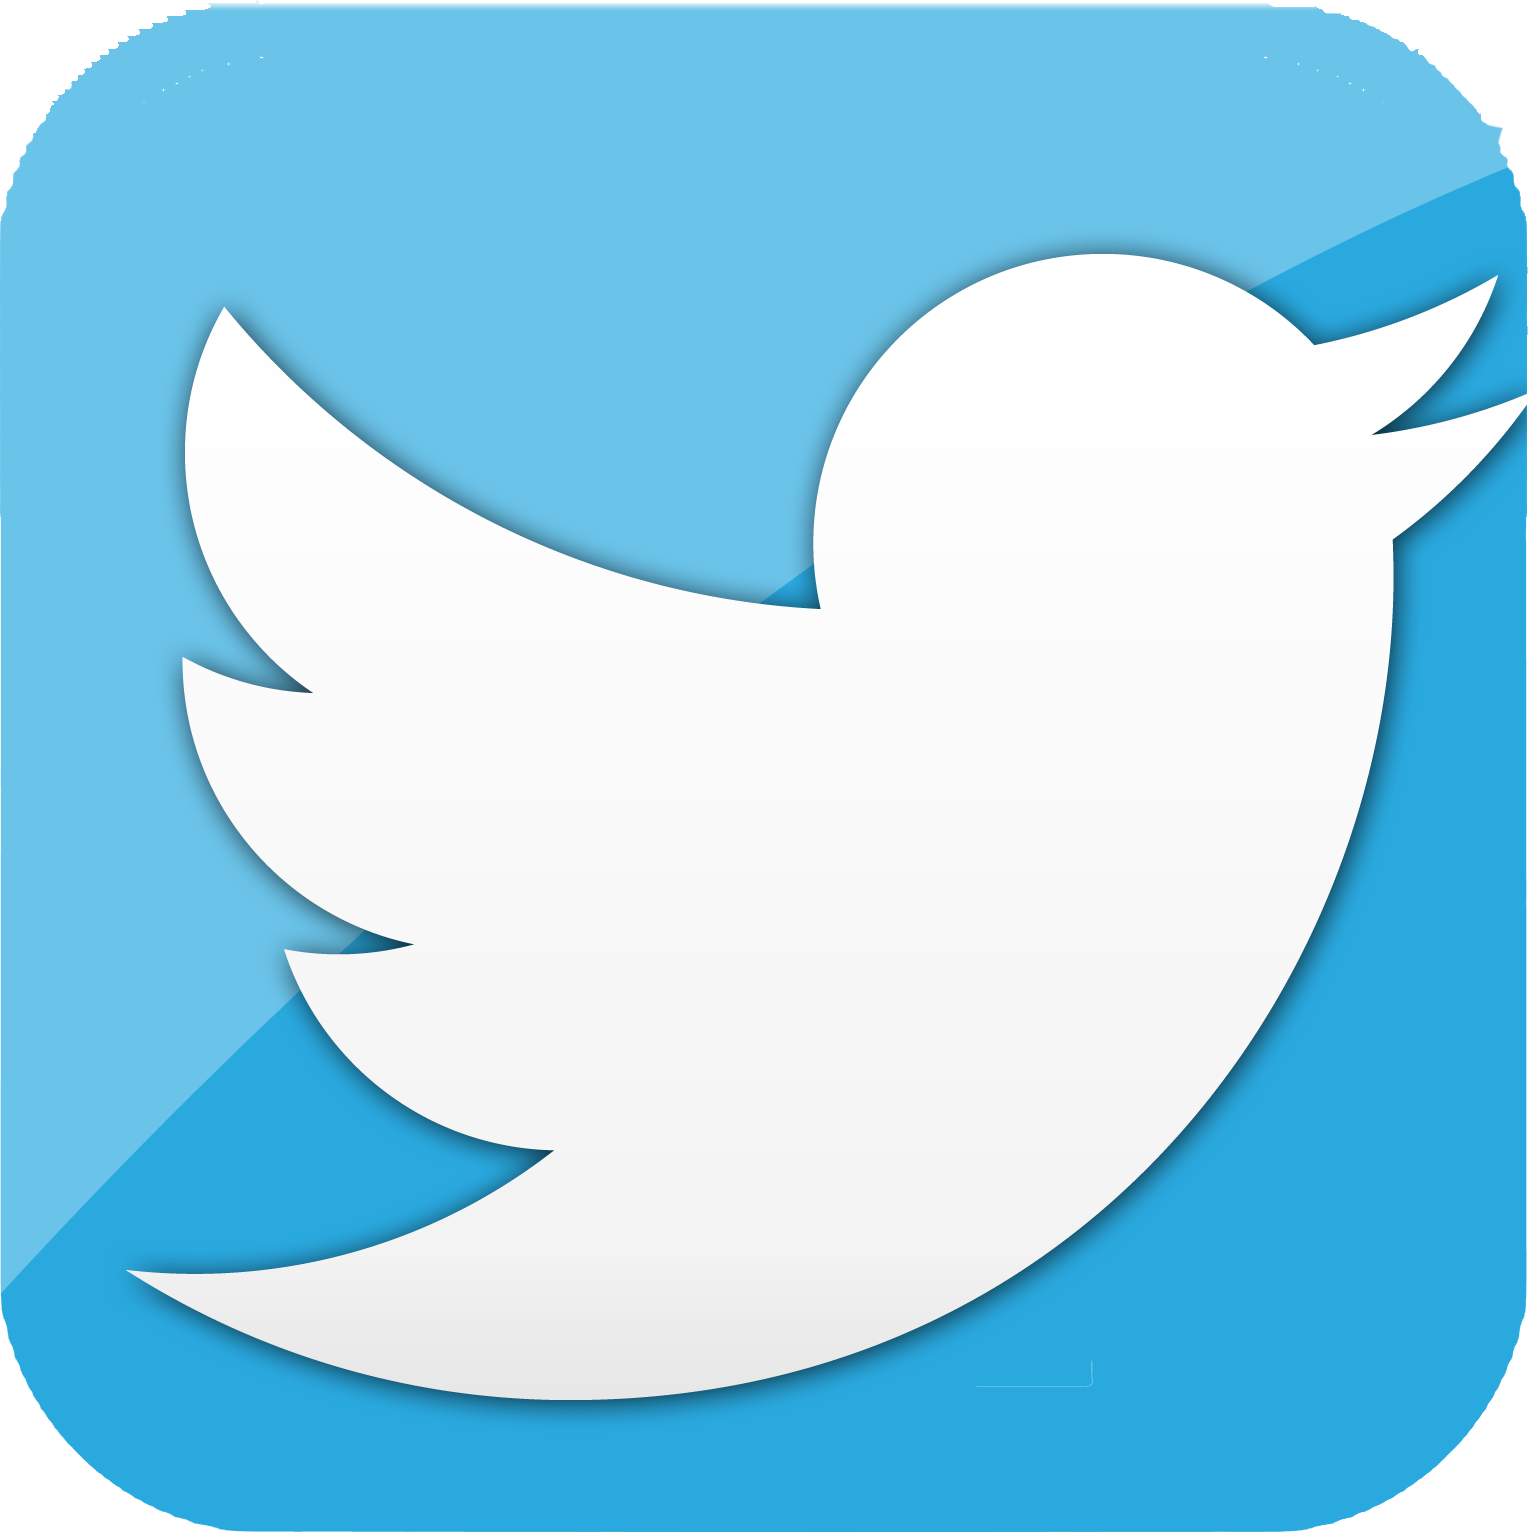 Download Logo Twitter Icon #47457.